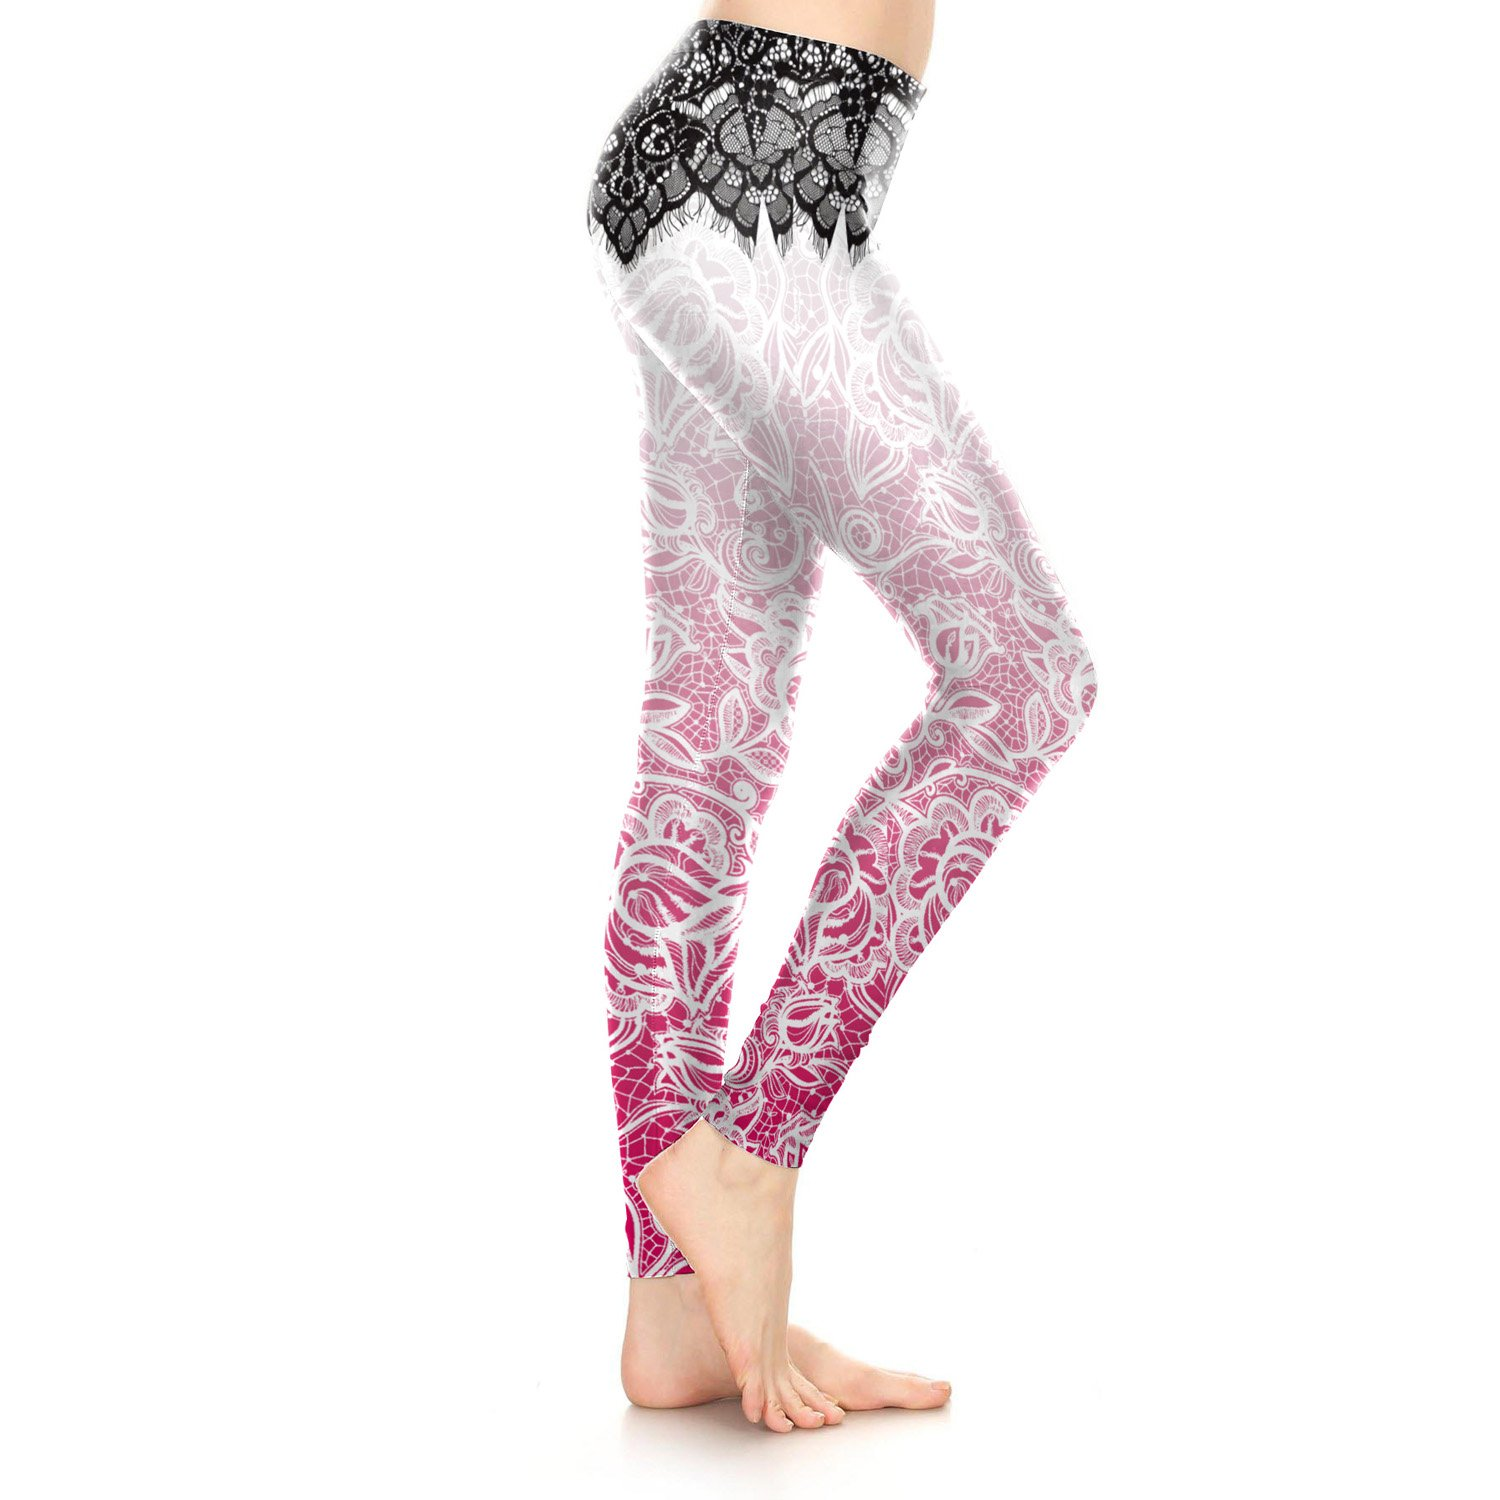 416ea9ae43215 Amazon.com  KUNIZI Pink Boho Women Leggings Bohemia Mandala Flower Printed  Legging Pant  Clothing